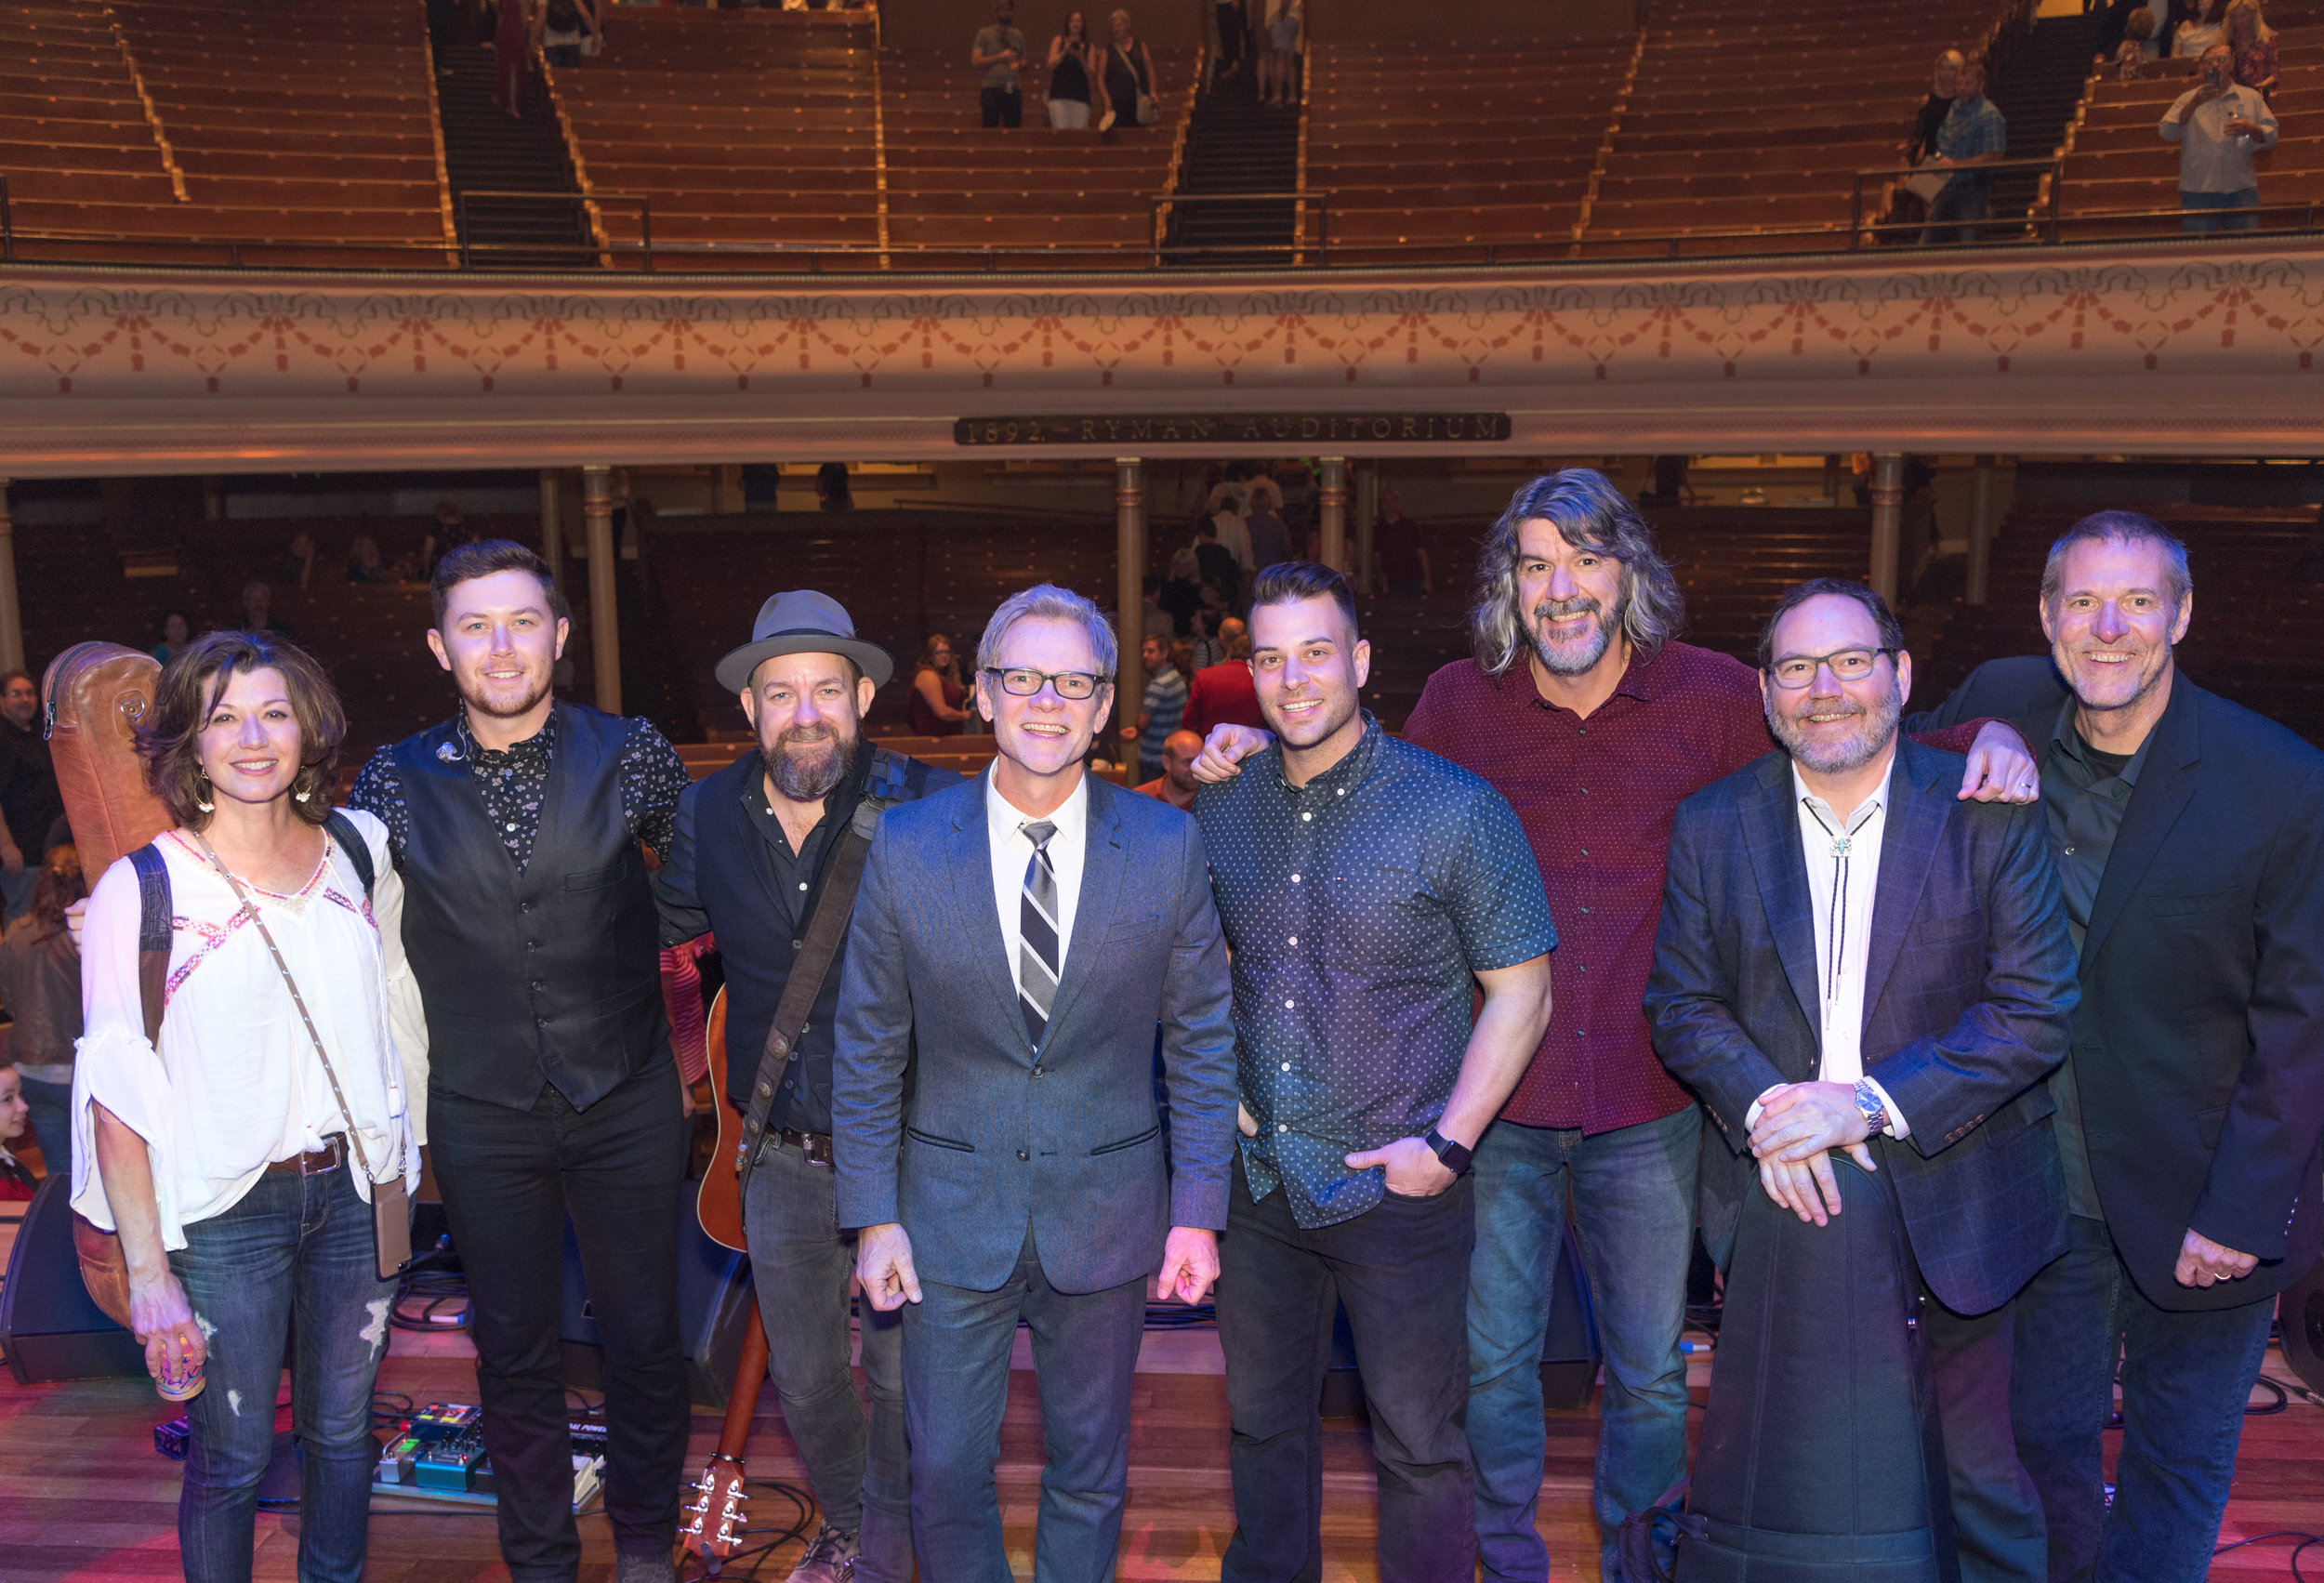 (left to right): Amy Grant, Scotty McCreery, Kristian Bush, Steven Curtis Chapman, Jonny Diaz, and The SteelDrivers' Brent Truitt, Richard Bailey and Mike Fleming.  (Photo Credit: Steve Lowry for the Ryman Auditorum).